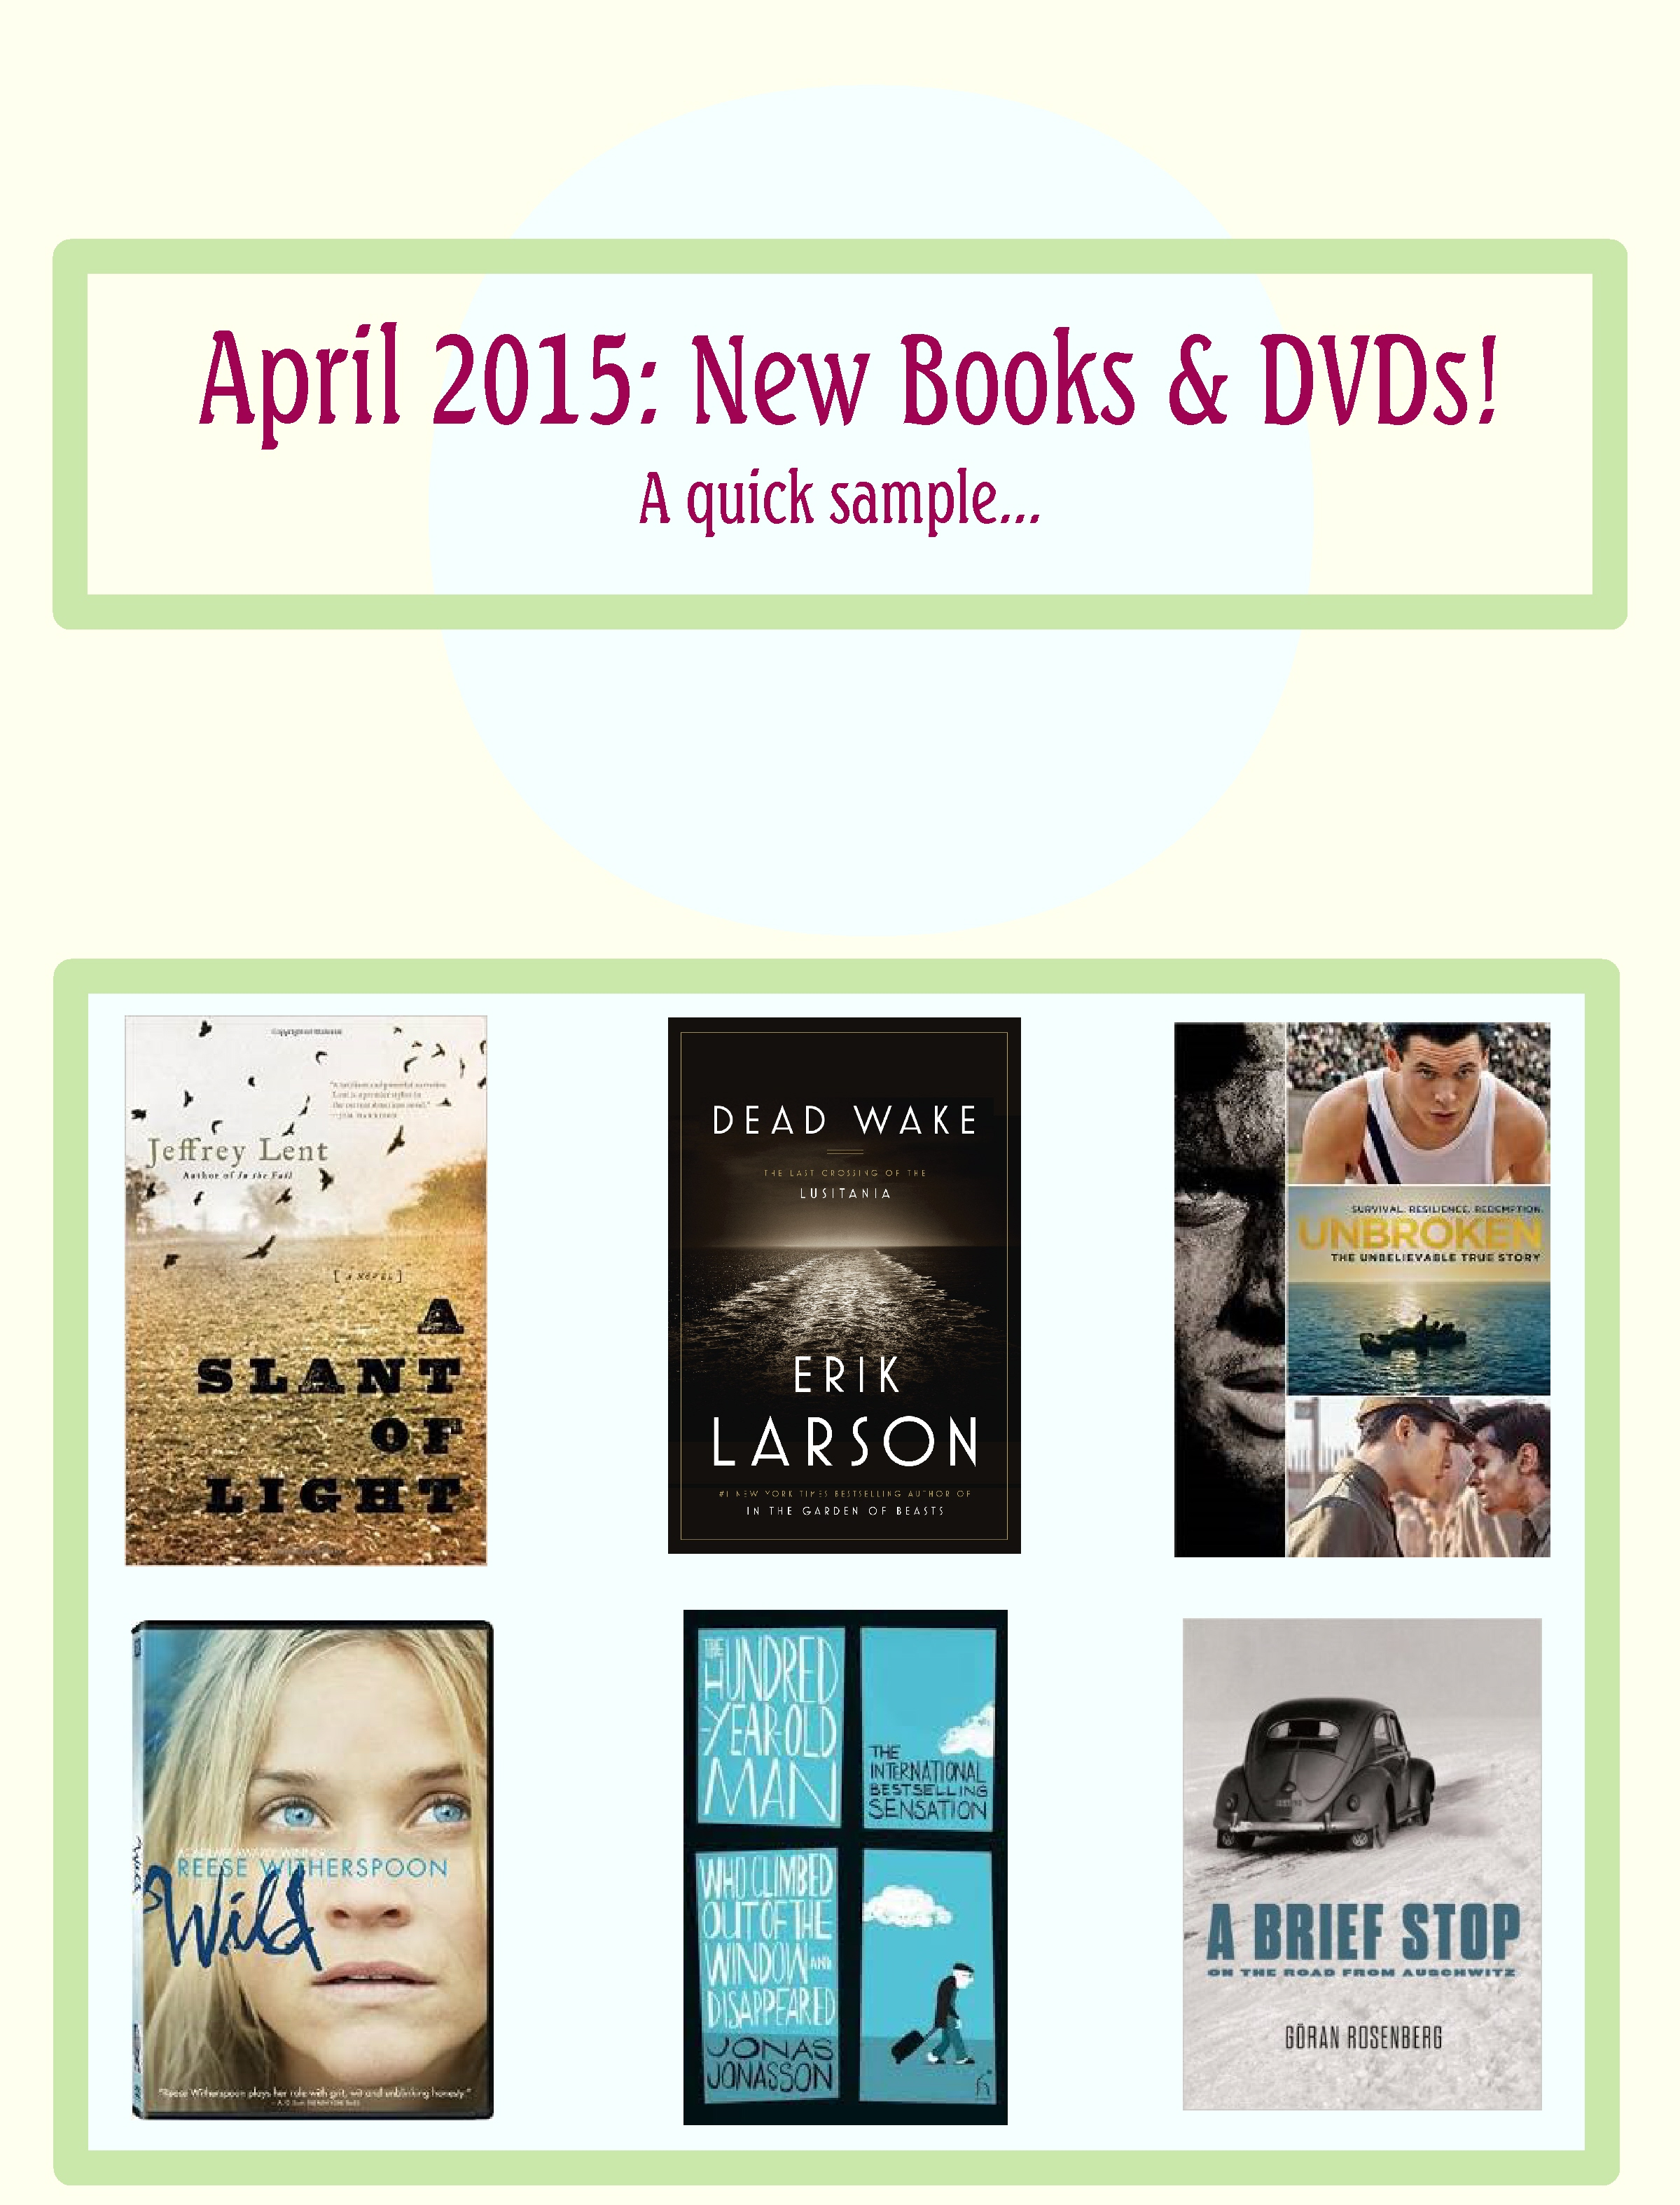 In case you missed it: New Books and DVDs from April